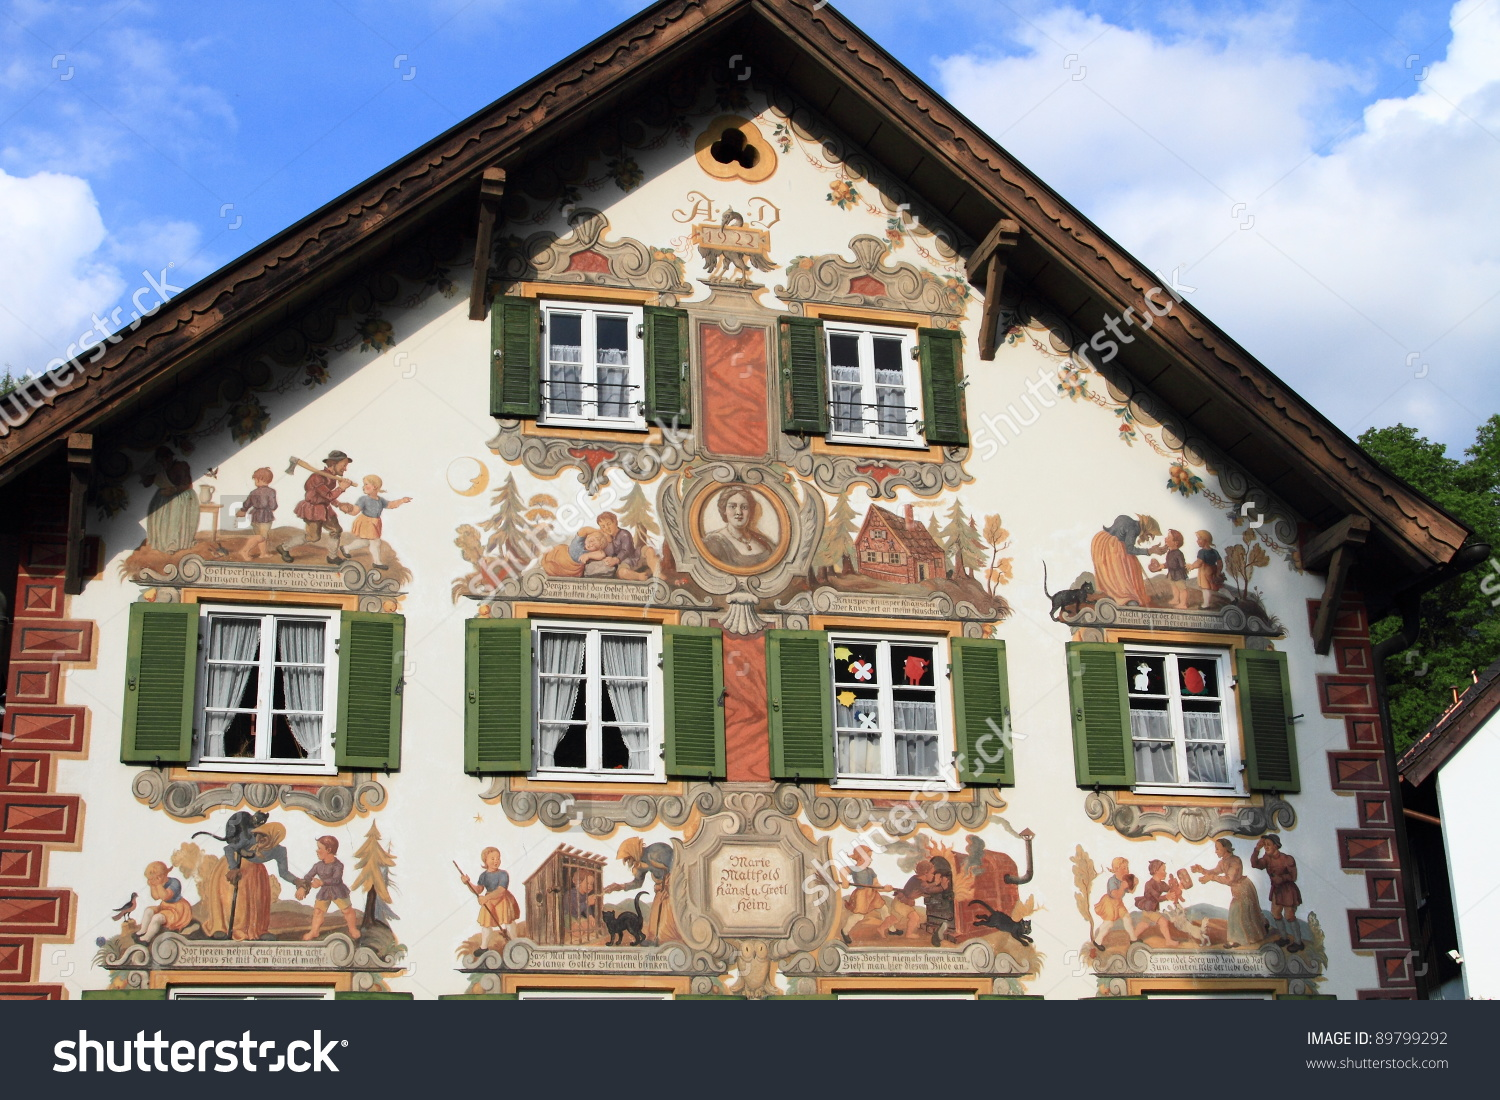 Medieval Painted Houses Oberammergau Bavaria Germany Stock Photo.